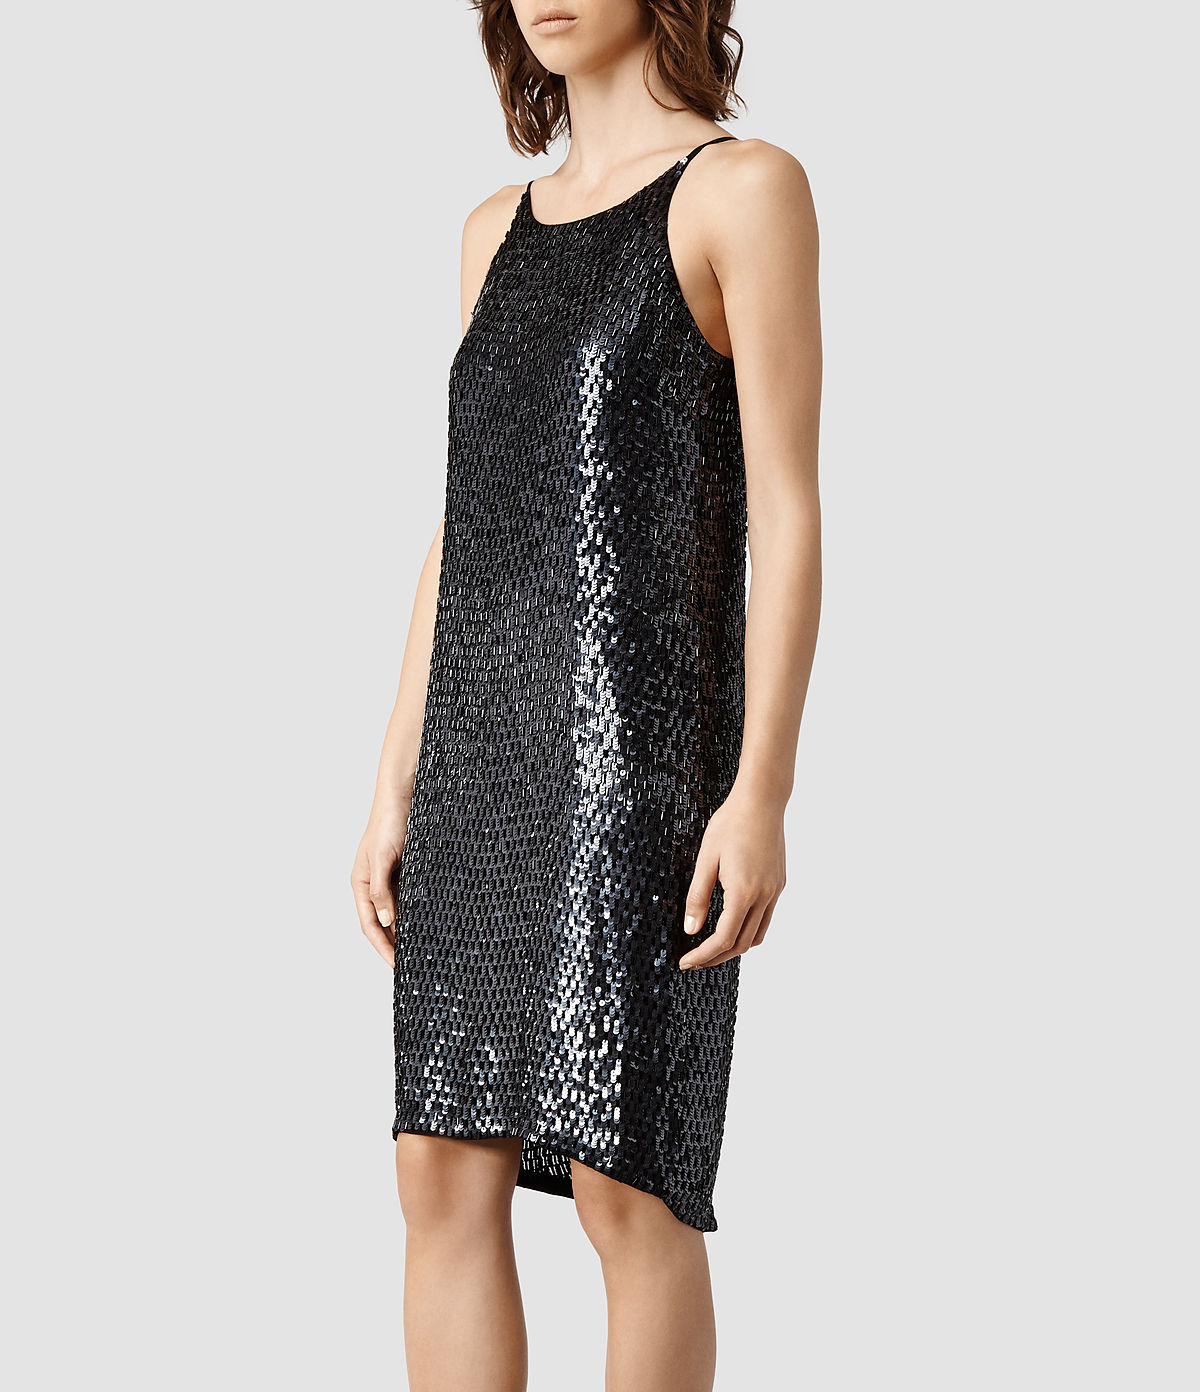 All Saints Gold Sequin Dress | Cocktail Dresses 2016